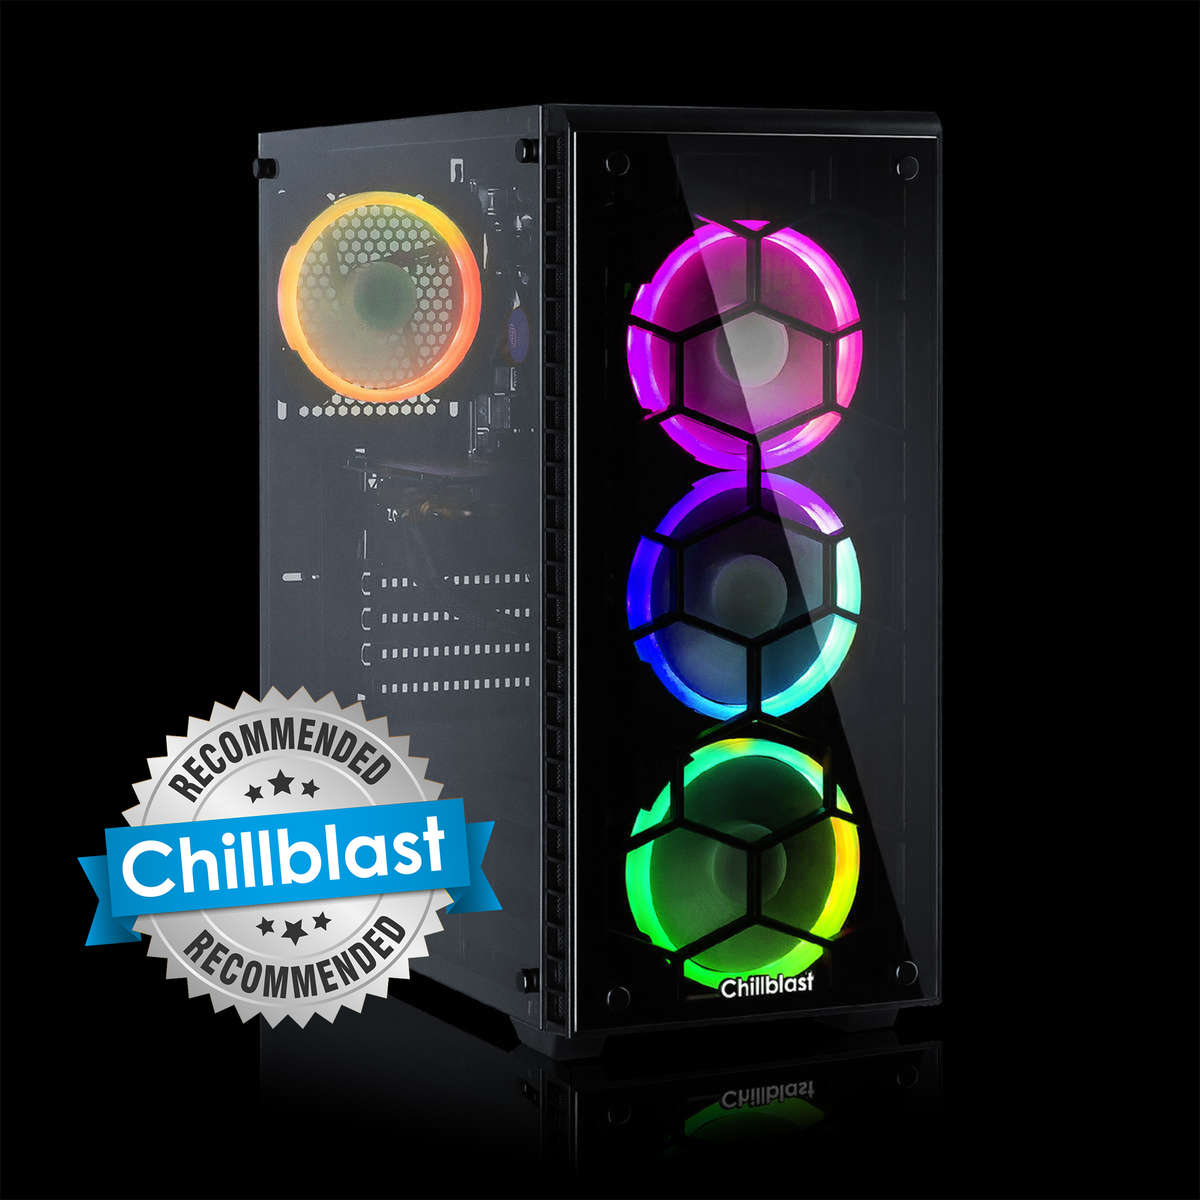 Image of the Chillblast recommended Chillblast Fusion RTX 2060 Super Custom Gaming PC